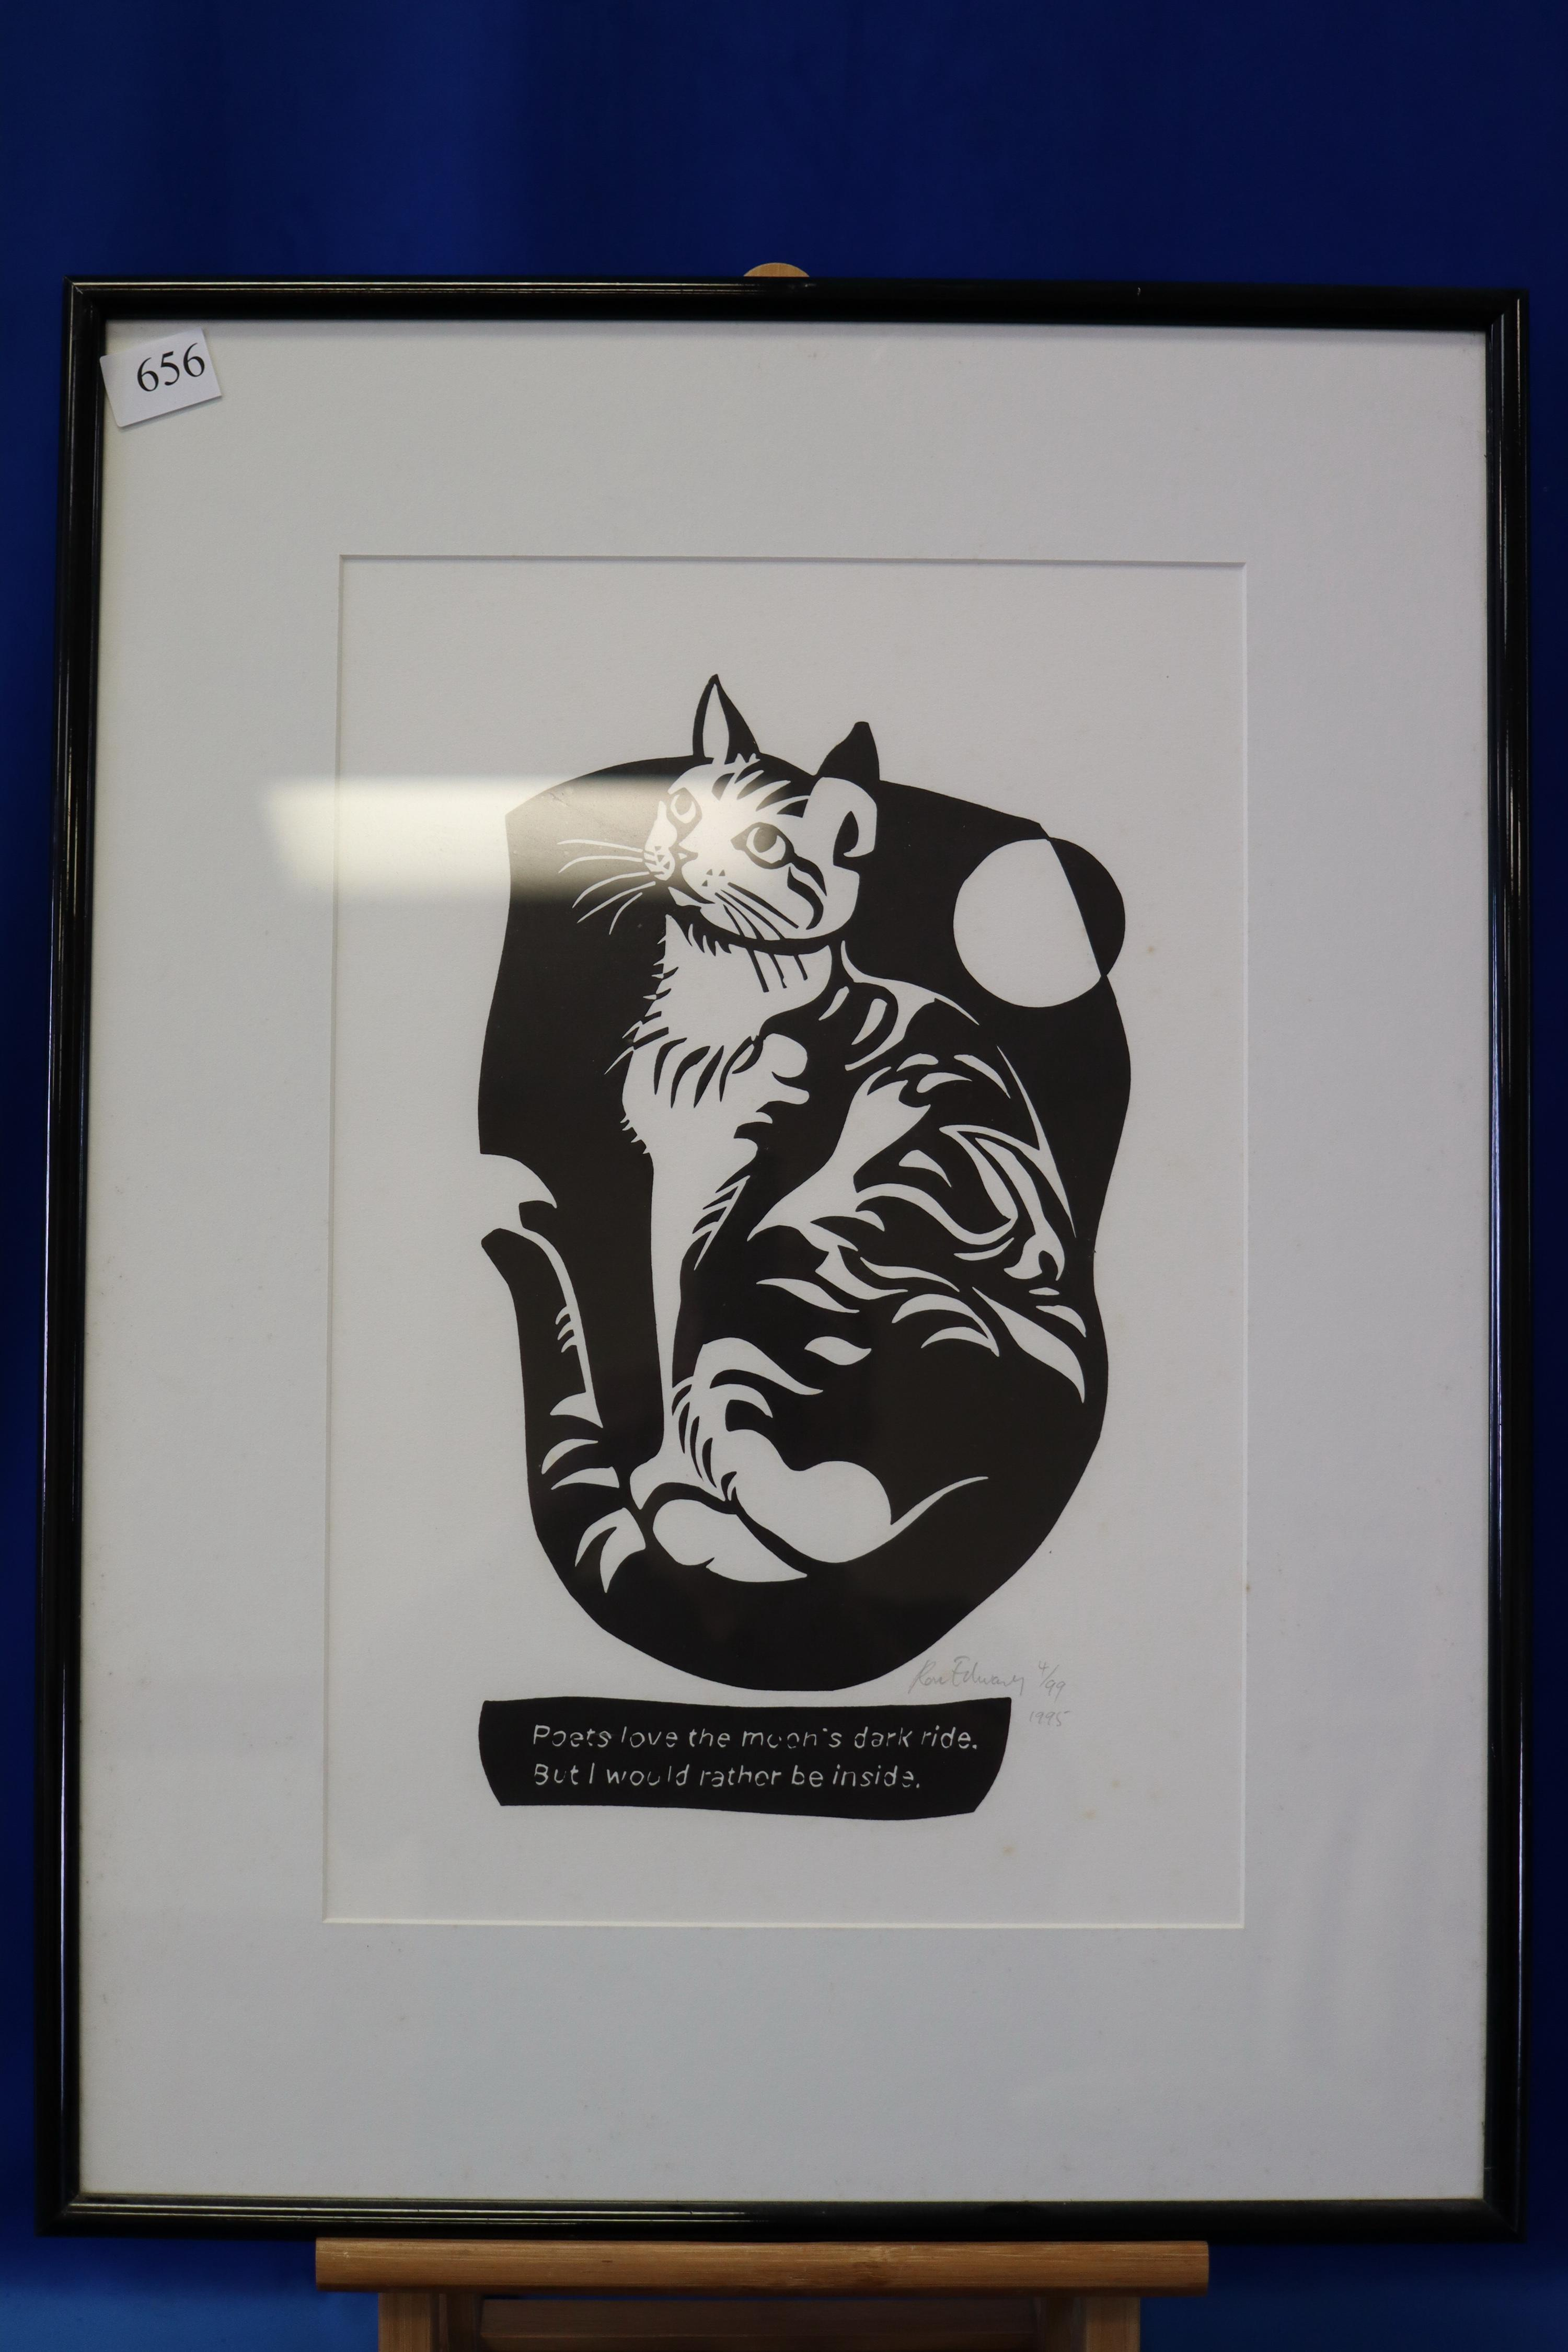 FRAMED BLACK AND WHITE CAT PICTURE